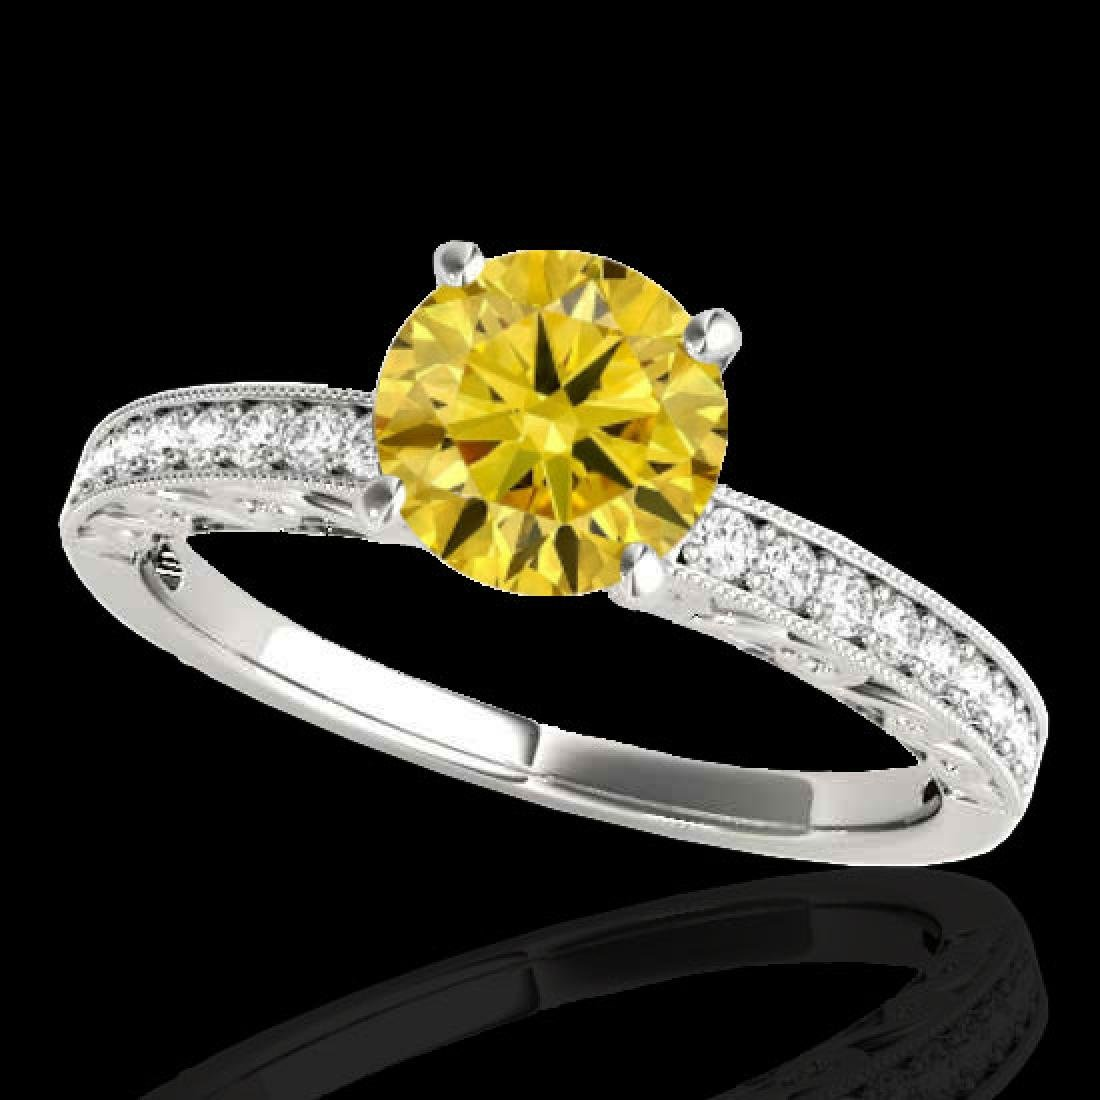 1.43 CTW Certified Si Intense Yellow Diamond Solitaire